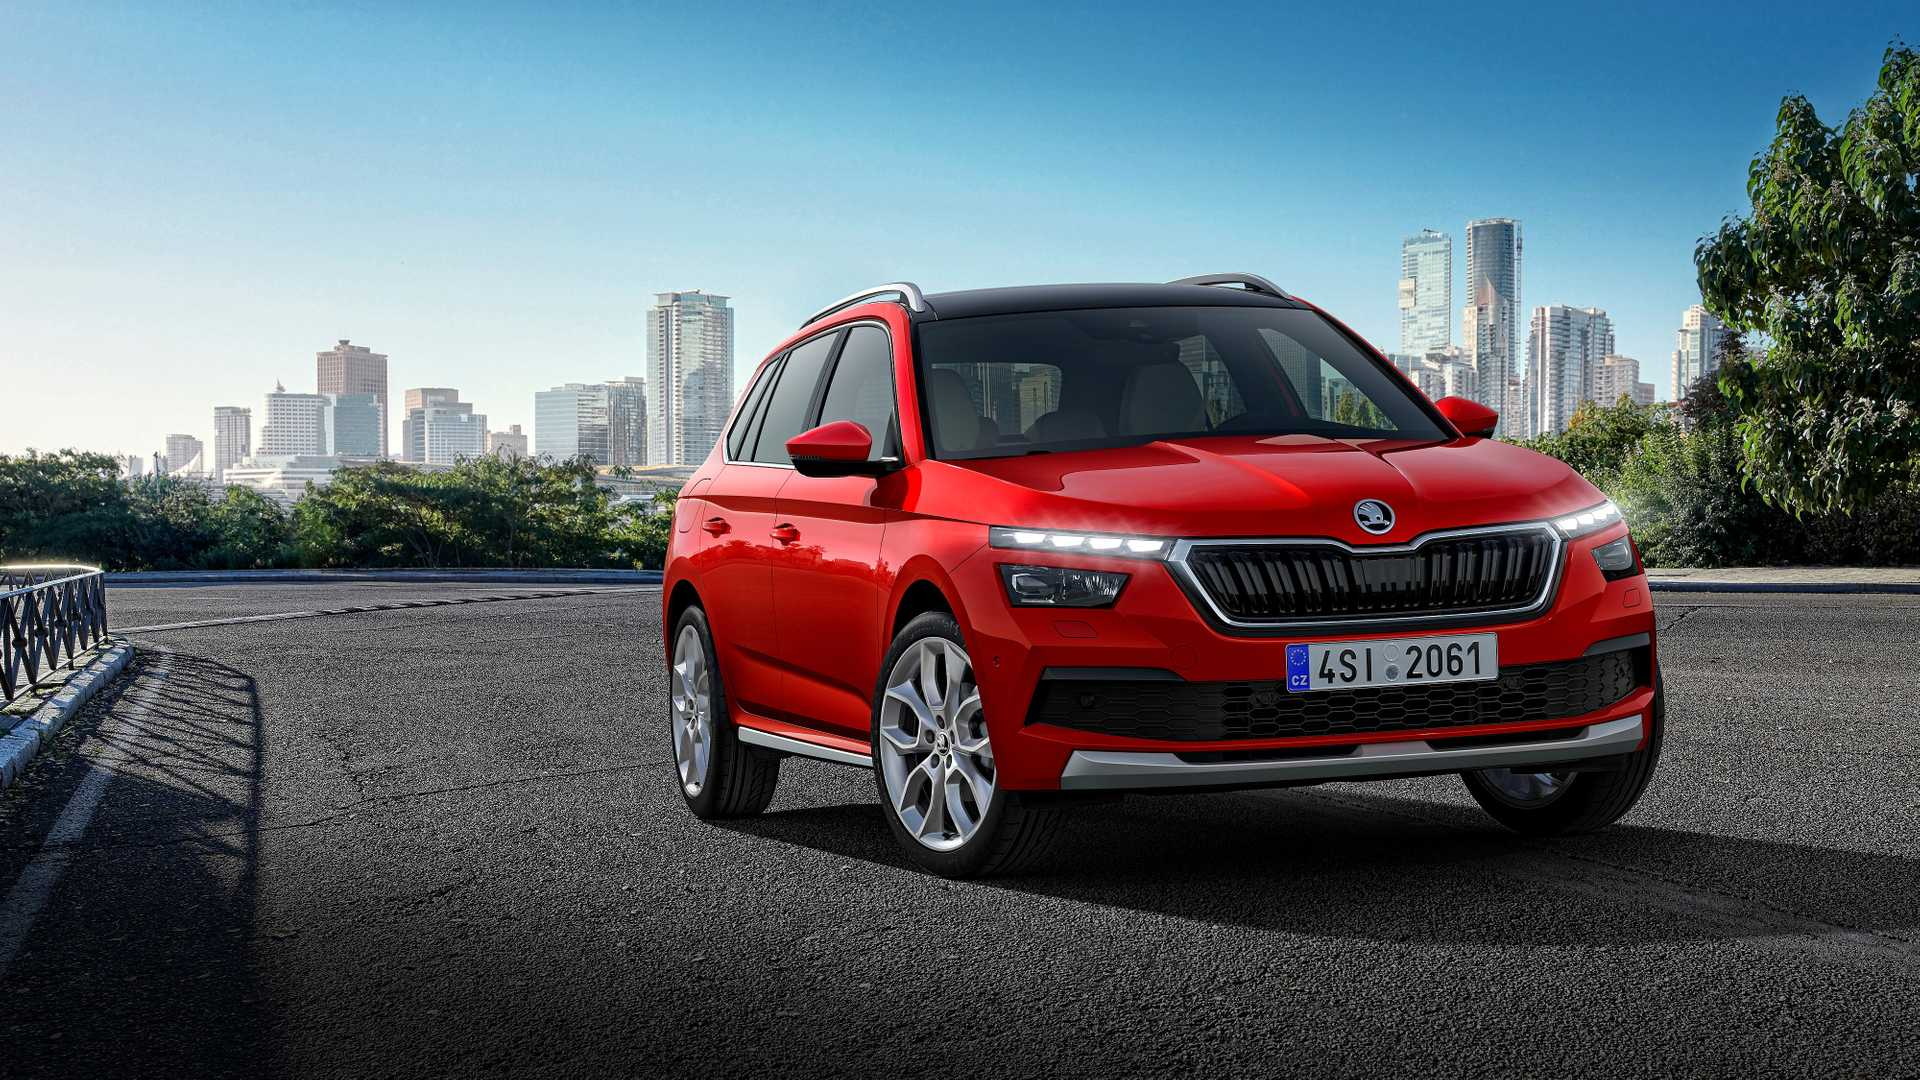 2020 Skoda Kamiq Review - autoevolution